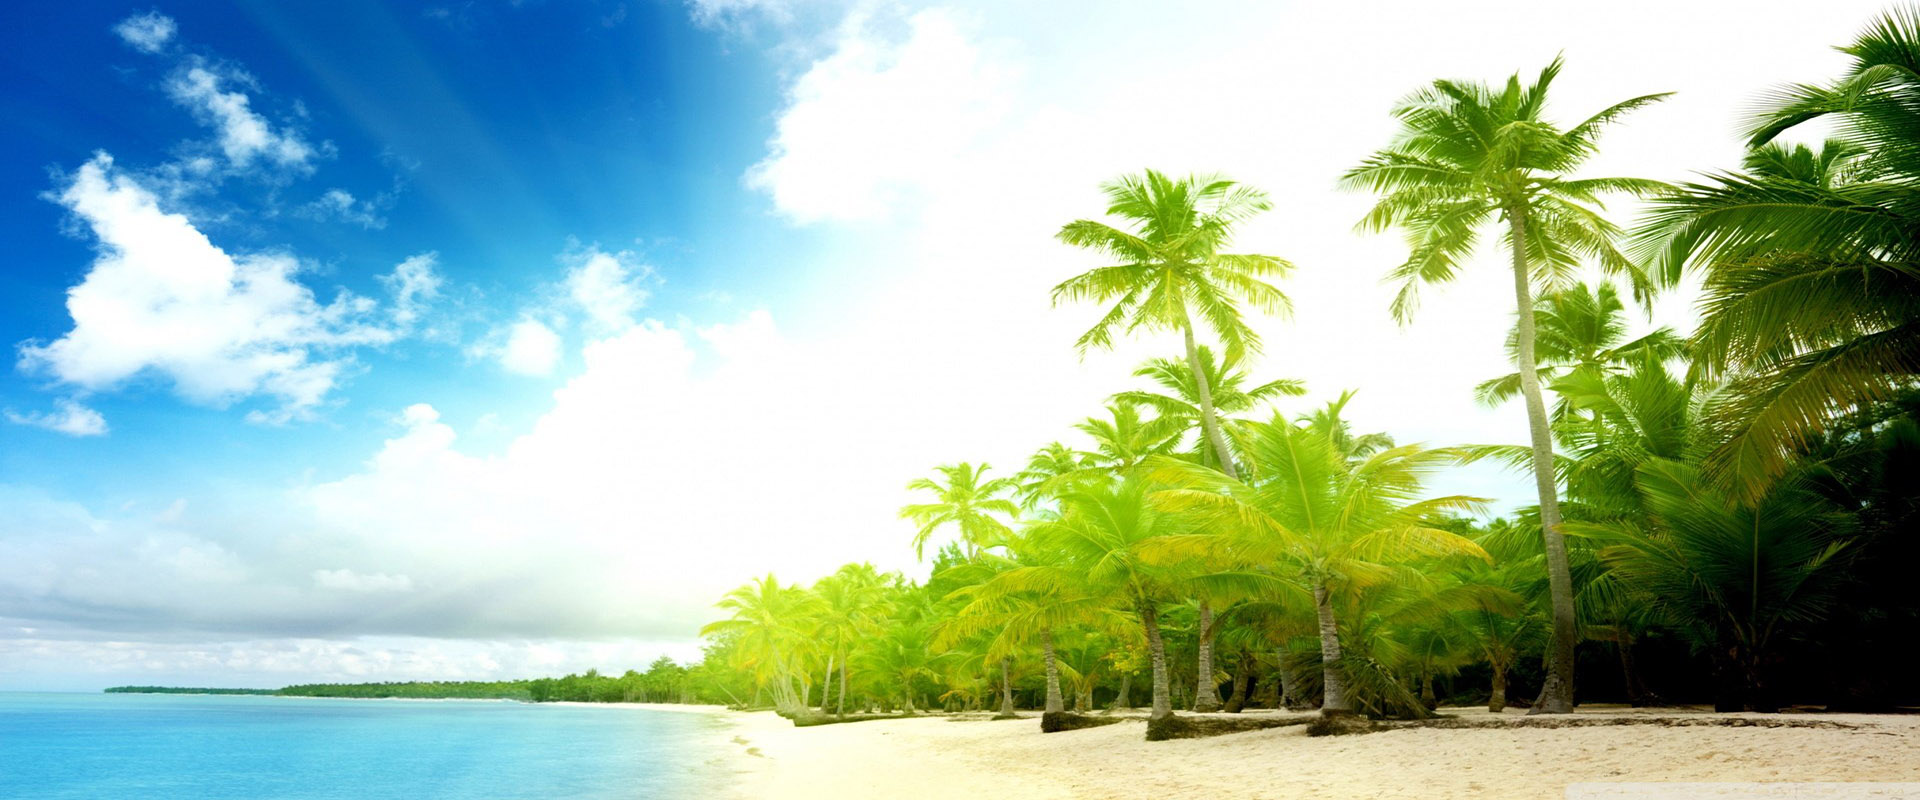 summer seaside coconut tree background  summer  seaside